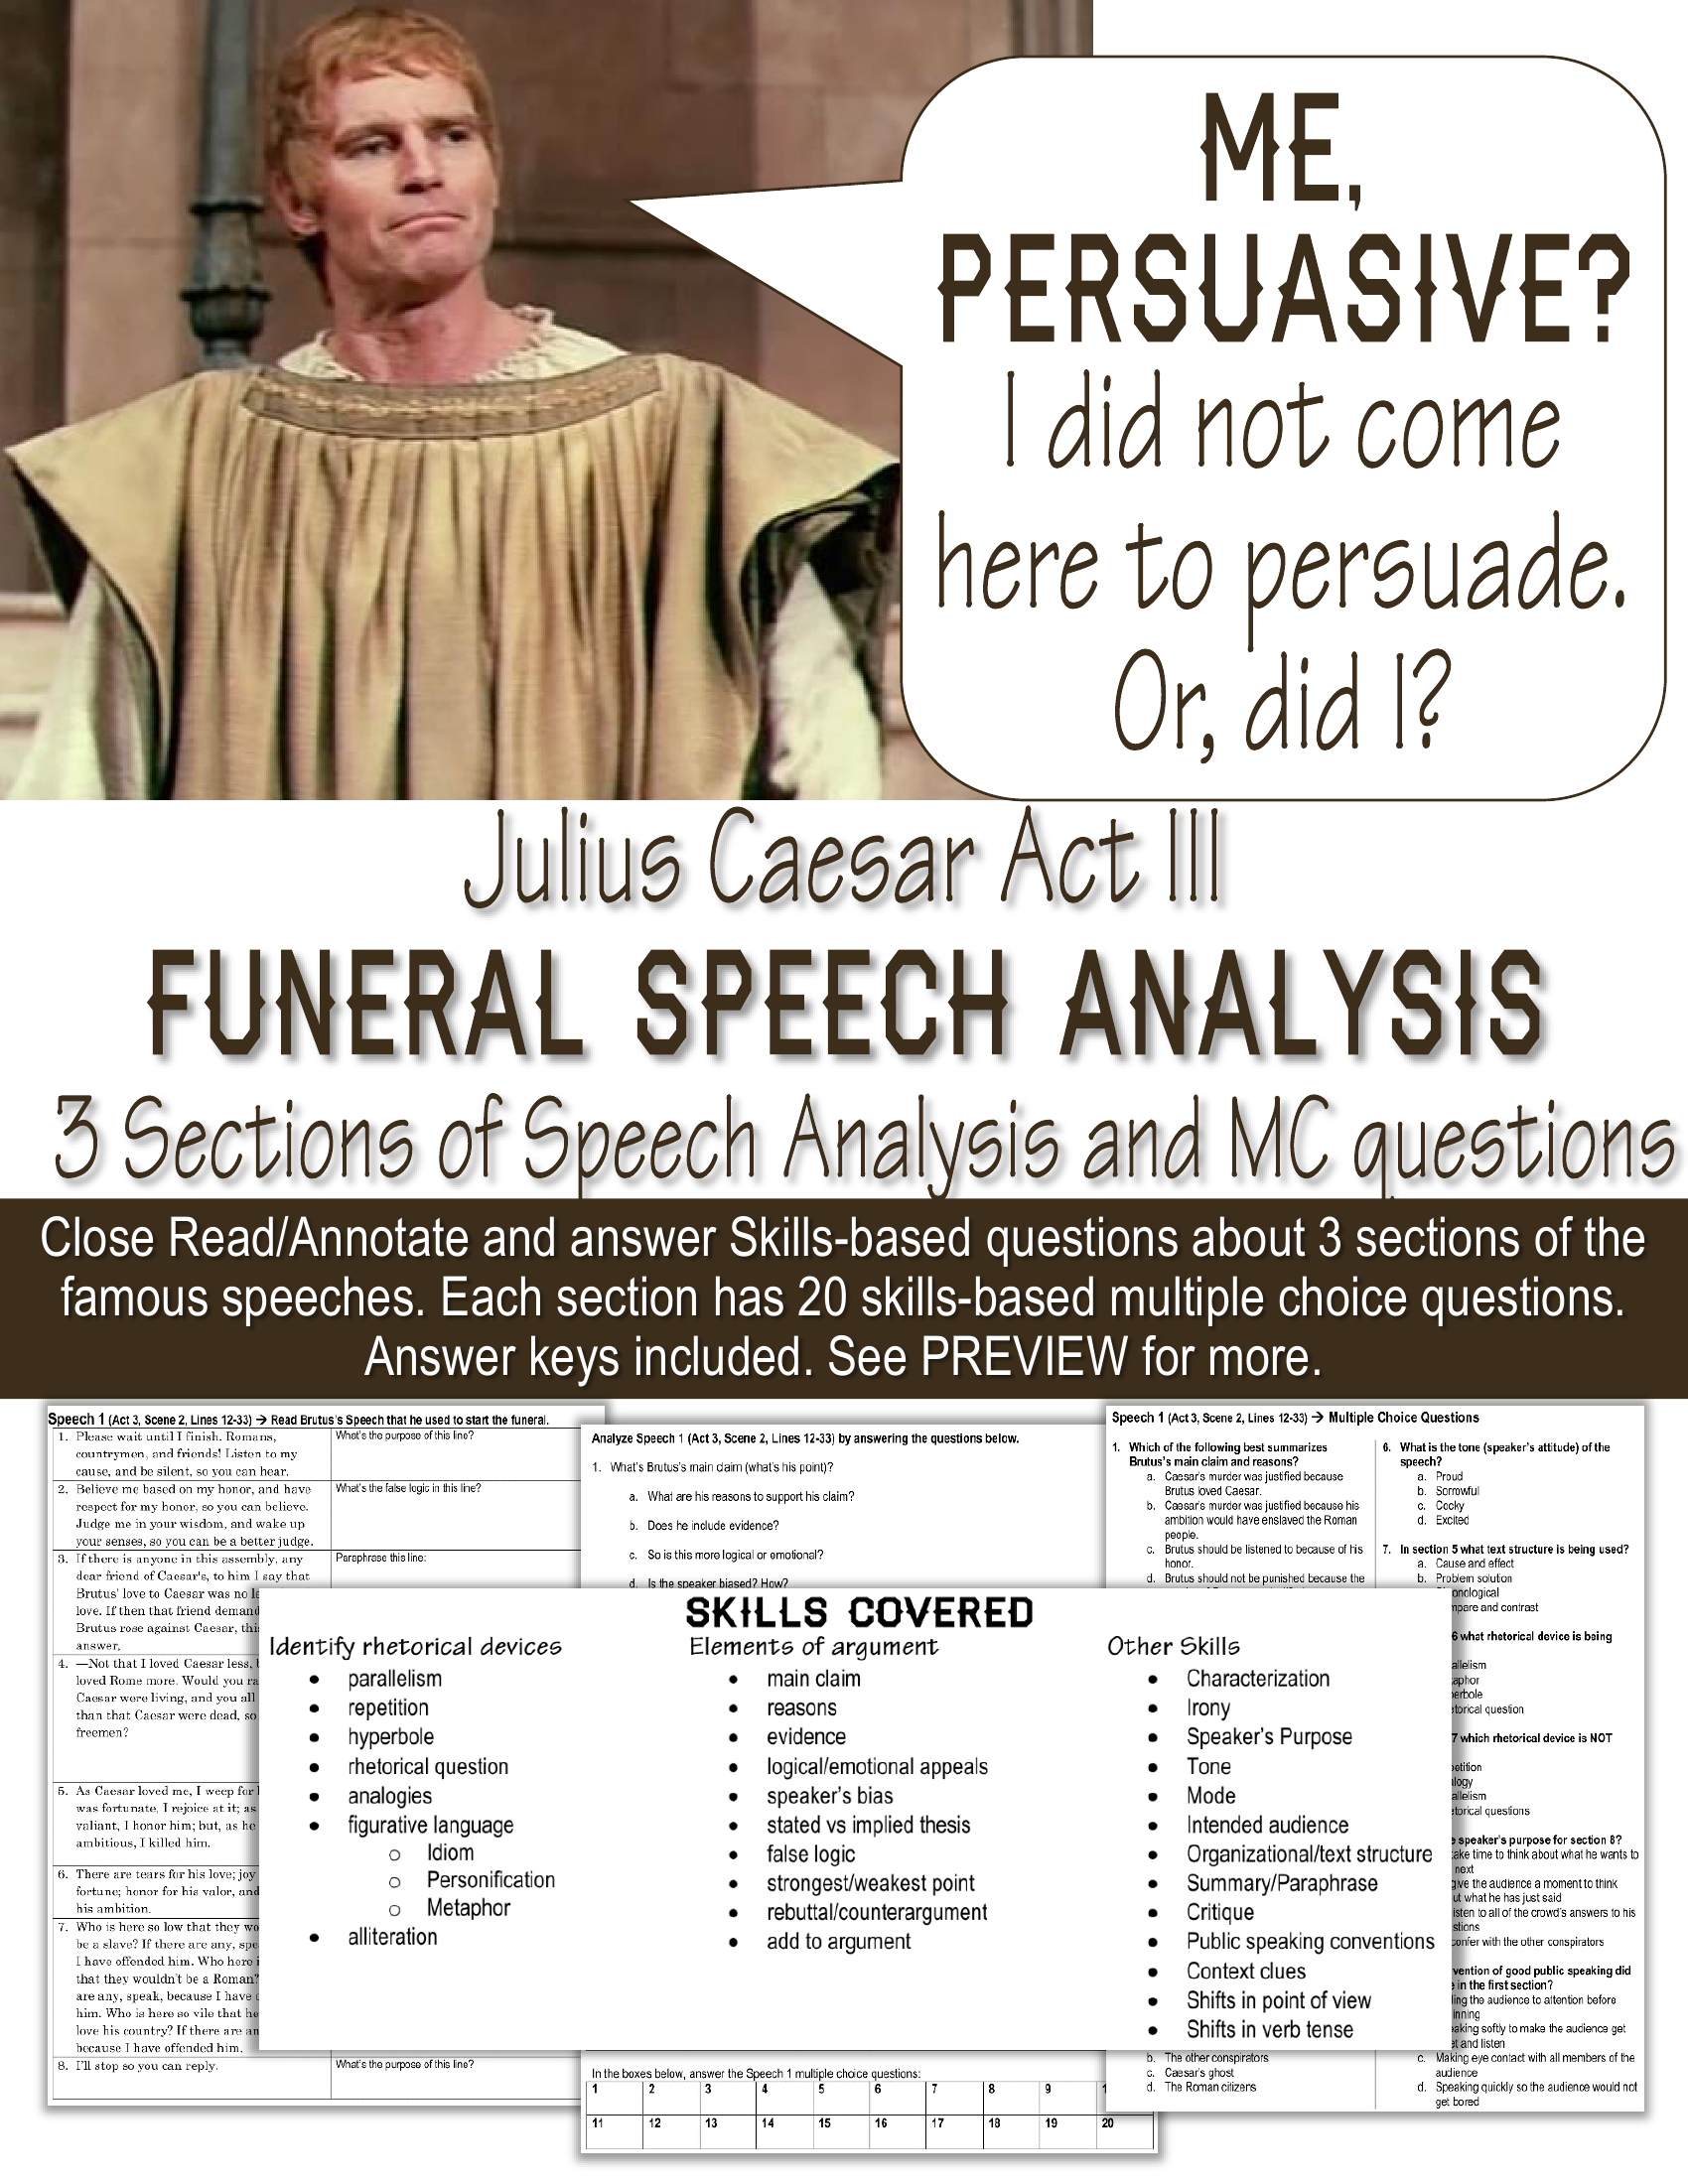 julius caesar speech In act iii, scenes 2 and 3 of julius caesar, two of caesars friends speak at his funeral, brutus and antony first, brutus speaks in order to answer the crowd's questions about caesar's .